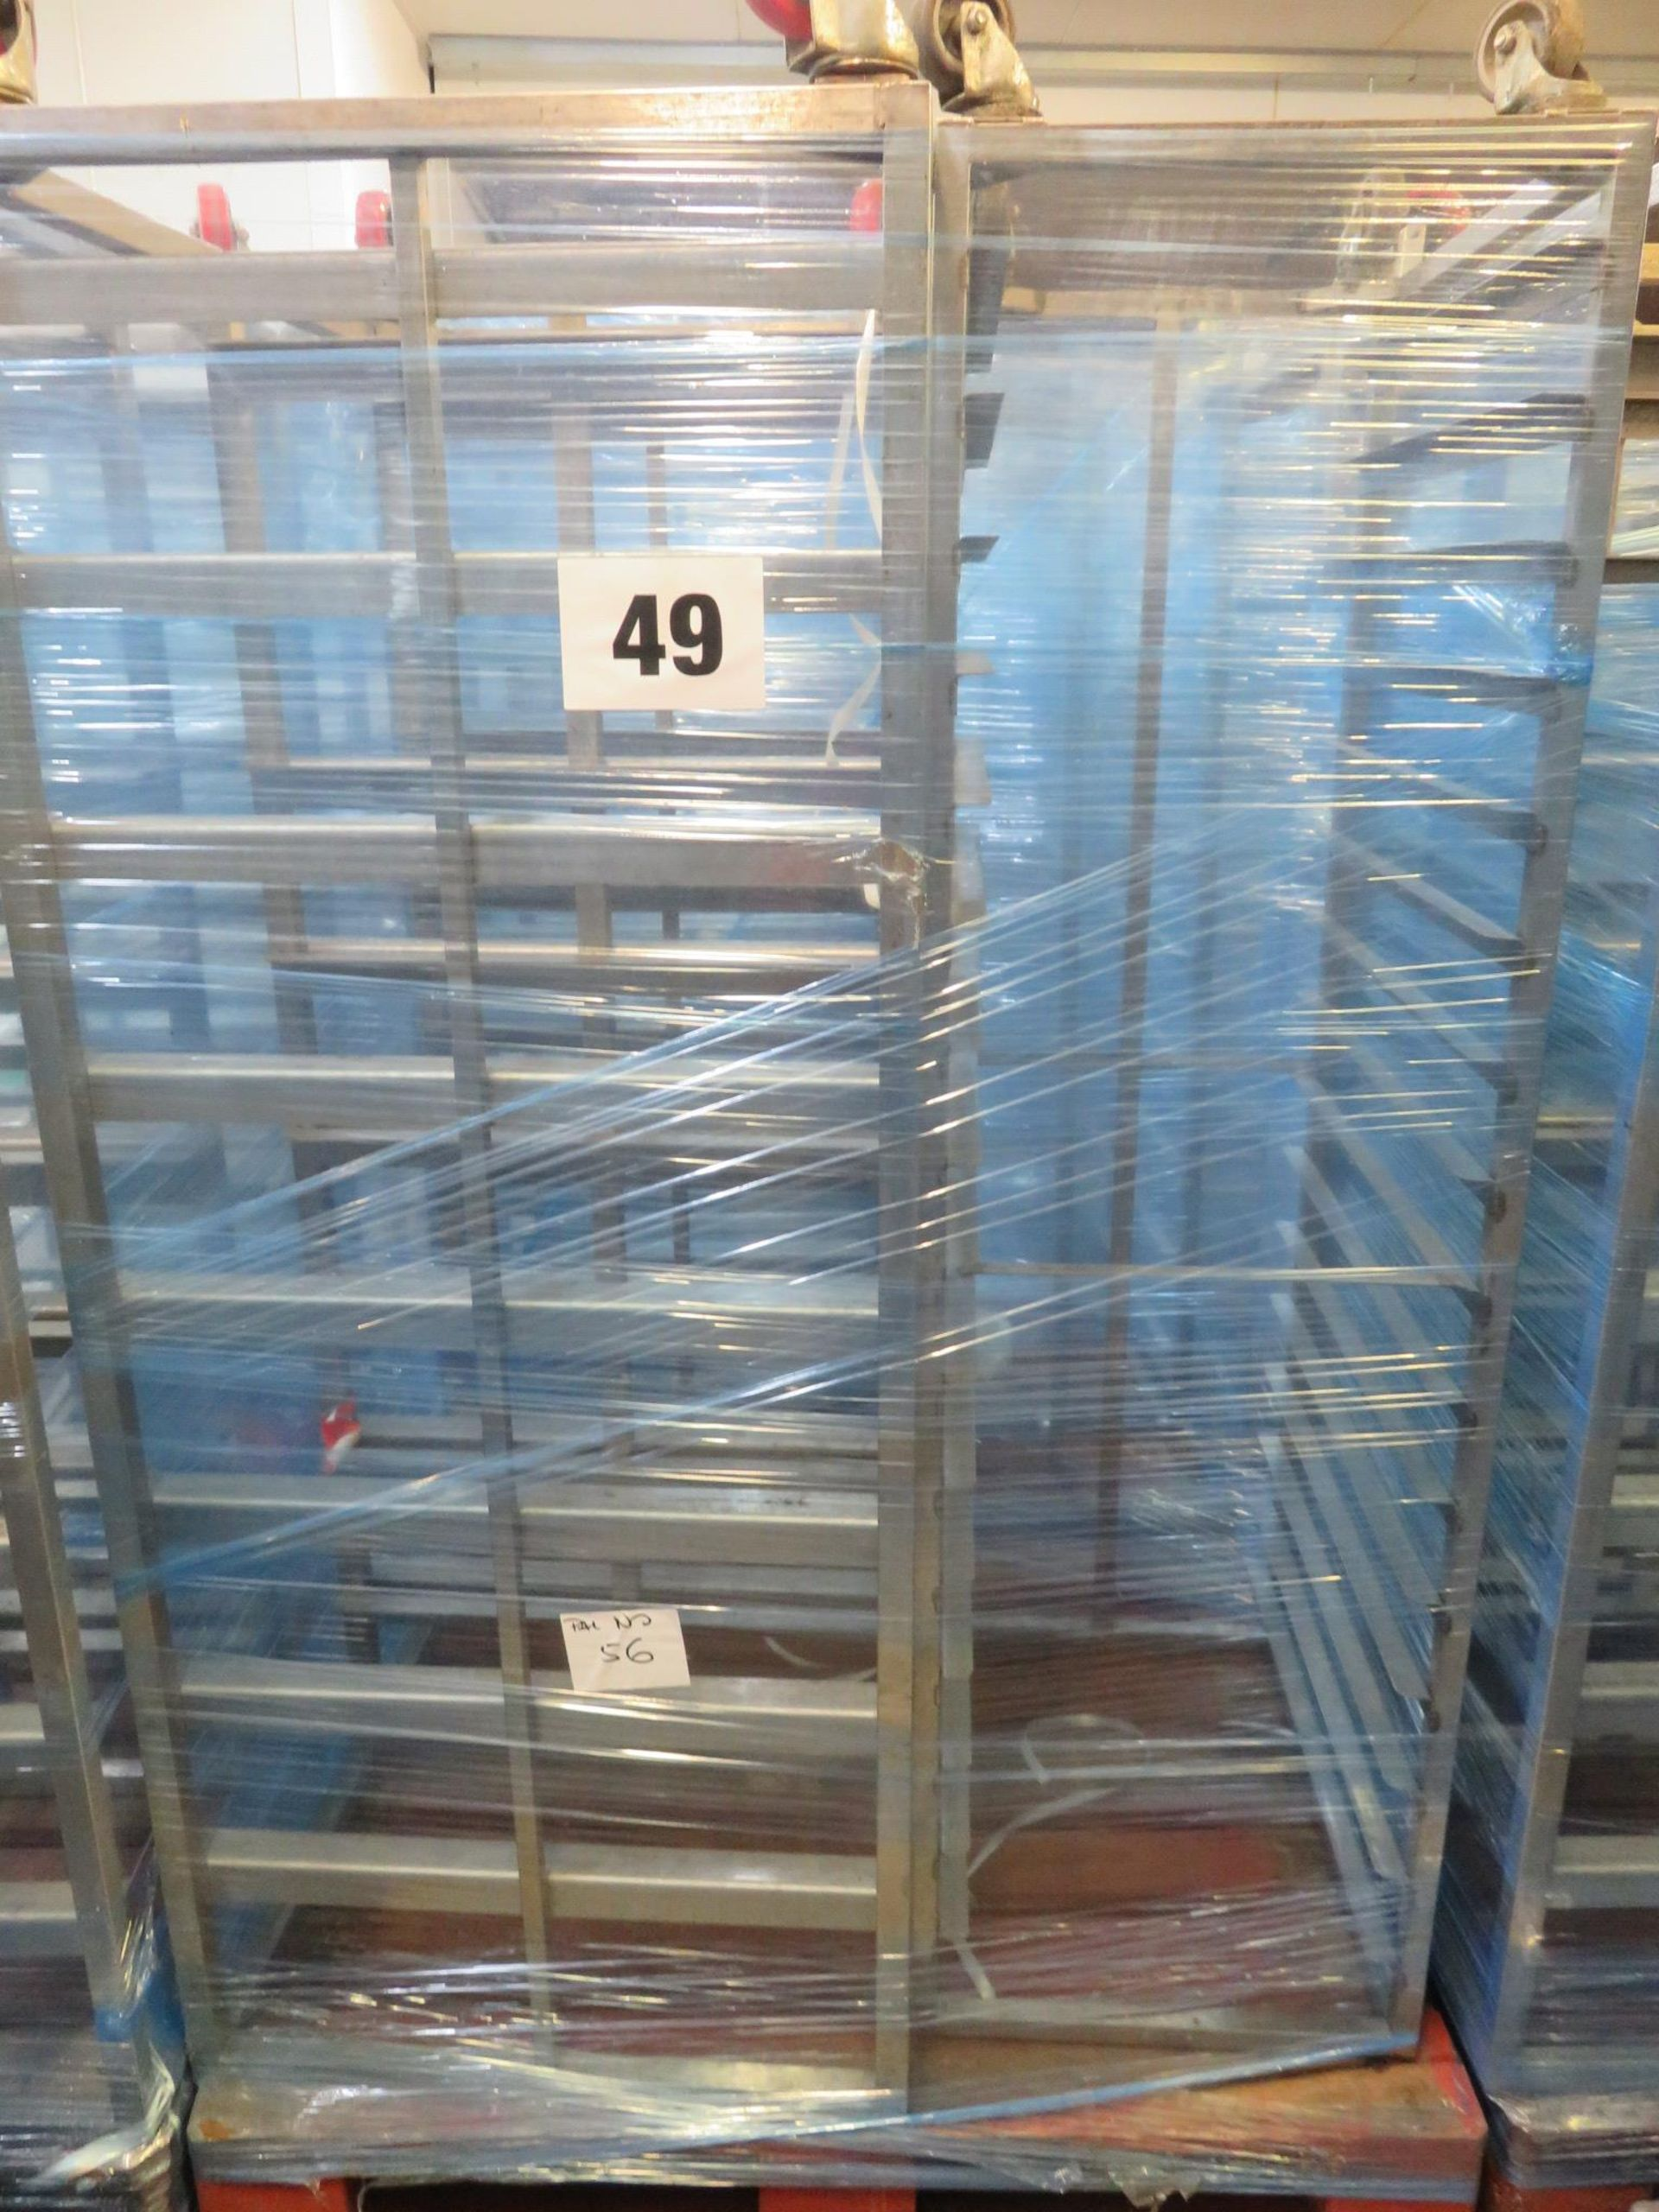 Lot 49 - 3 x S/s Rack: -2 x S/s Racks capable of taking 10 trays.Approx.430 x 650 x 1800mm high. LO£20